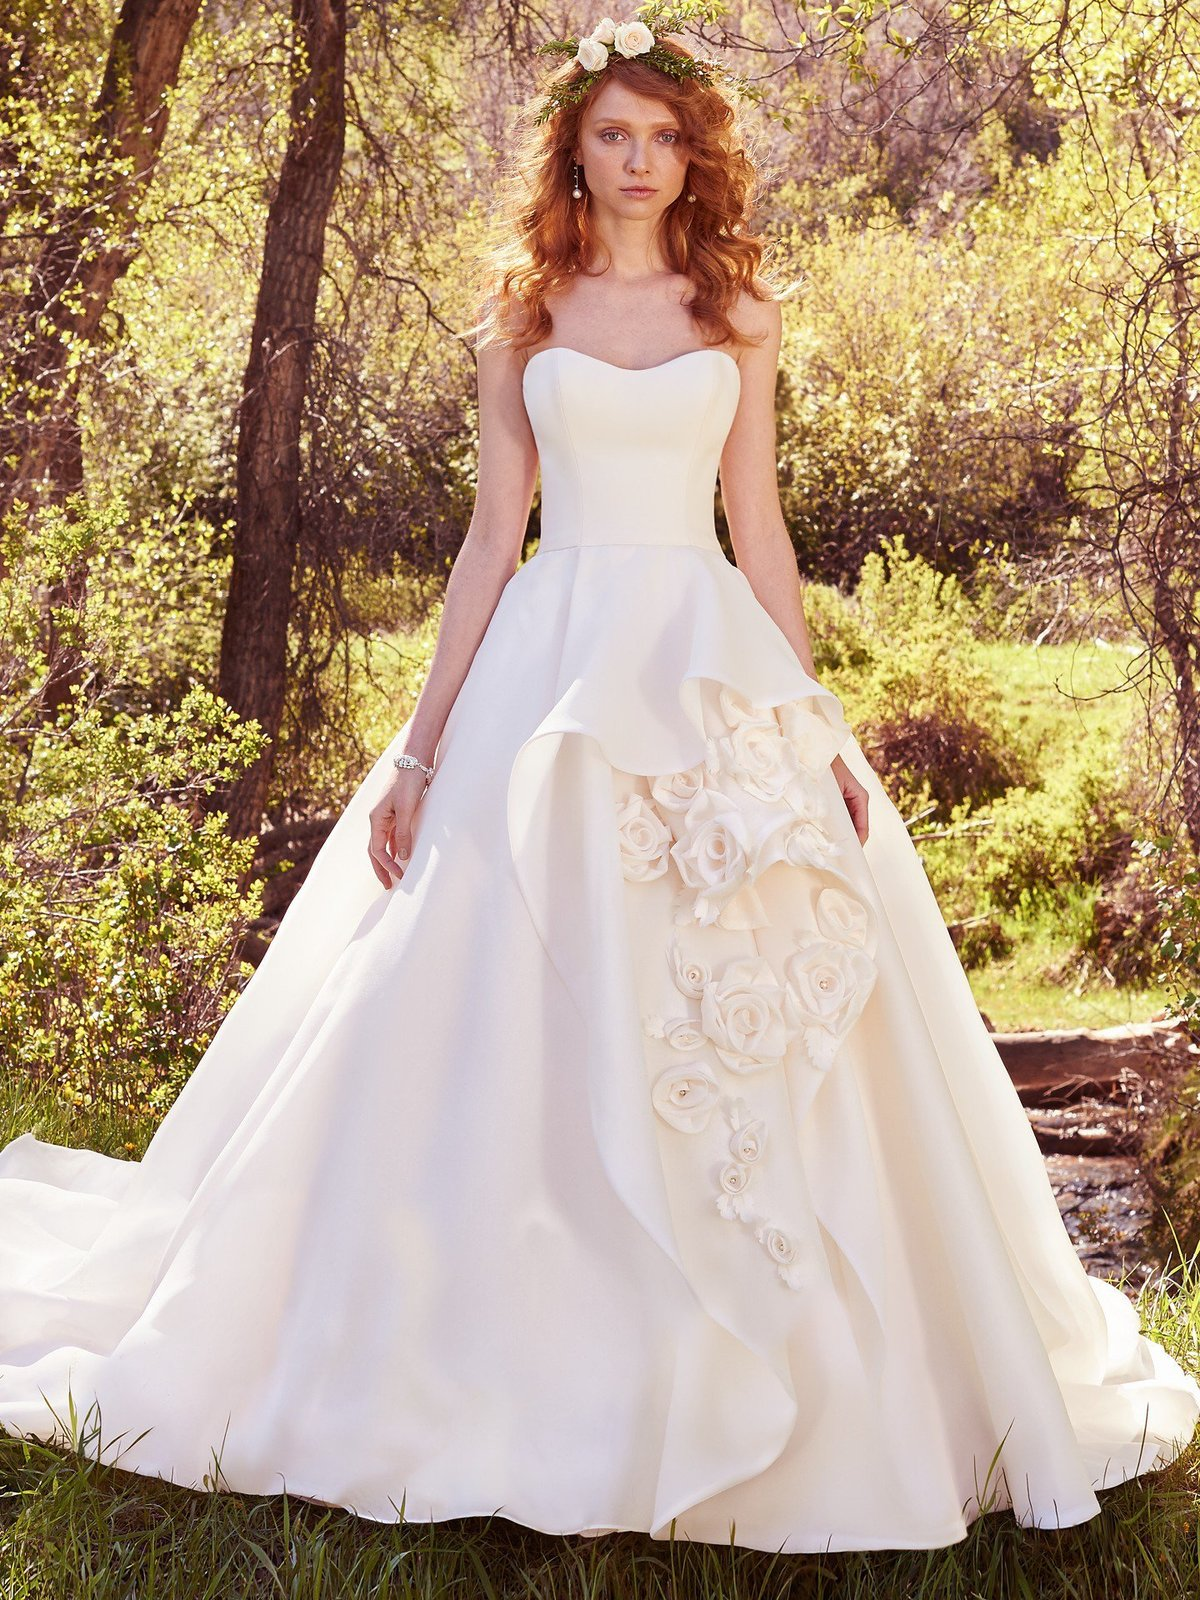 Maggie-Sottero-Wedding-Dress-Bianca